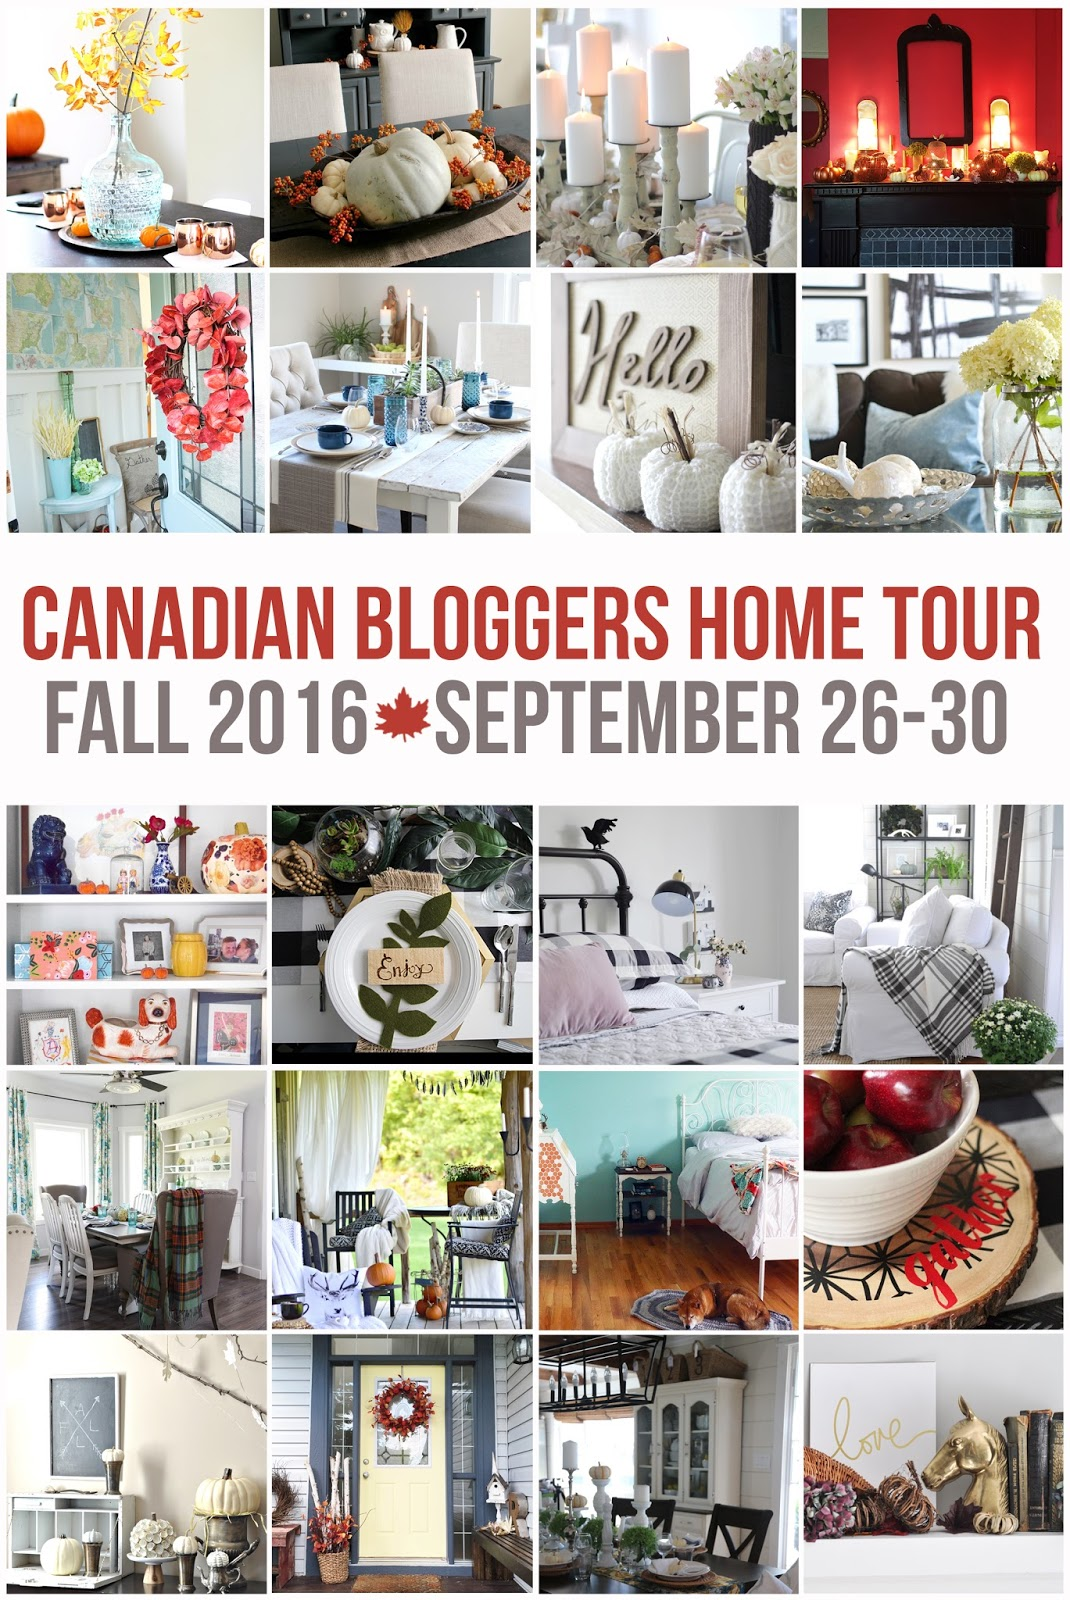 For More Fall Decorating Inspiration Visit The Rest Of Participants Home Tours On Their Tour Dates Below